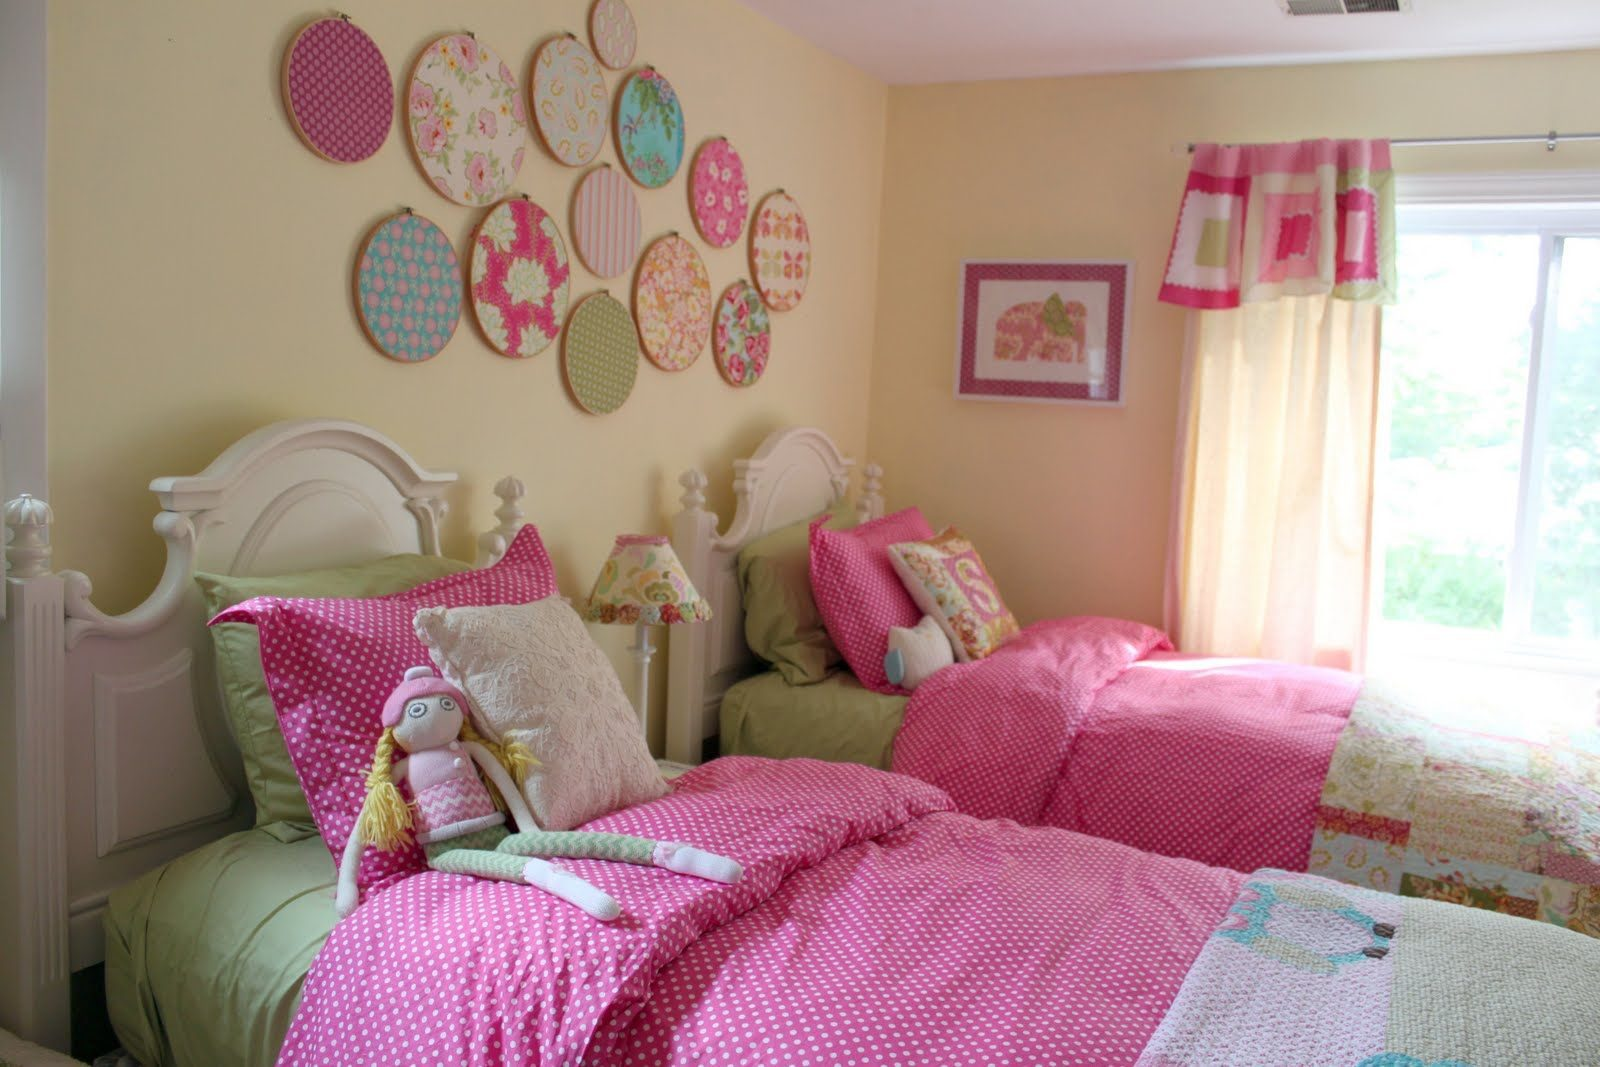 7 Inspiring Kid Room Color Options For Your Little Ones: Colores Para Una Habitación De Una Niña :: Imágenes Y Fotos